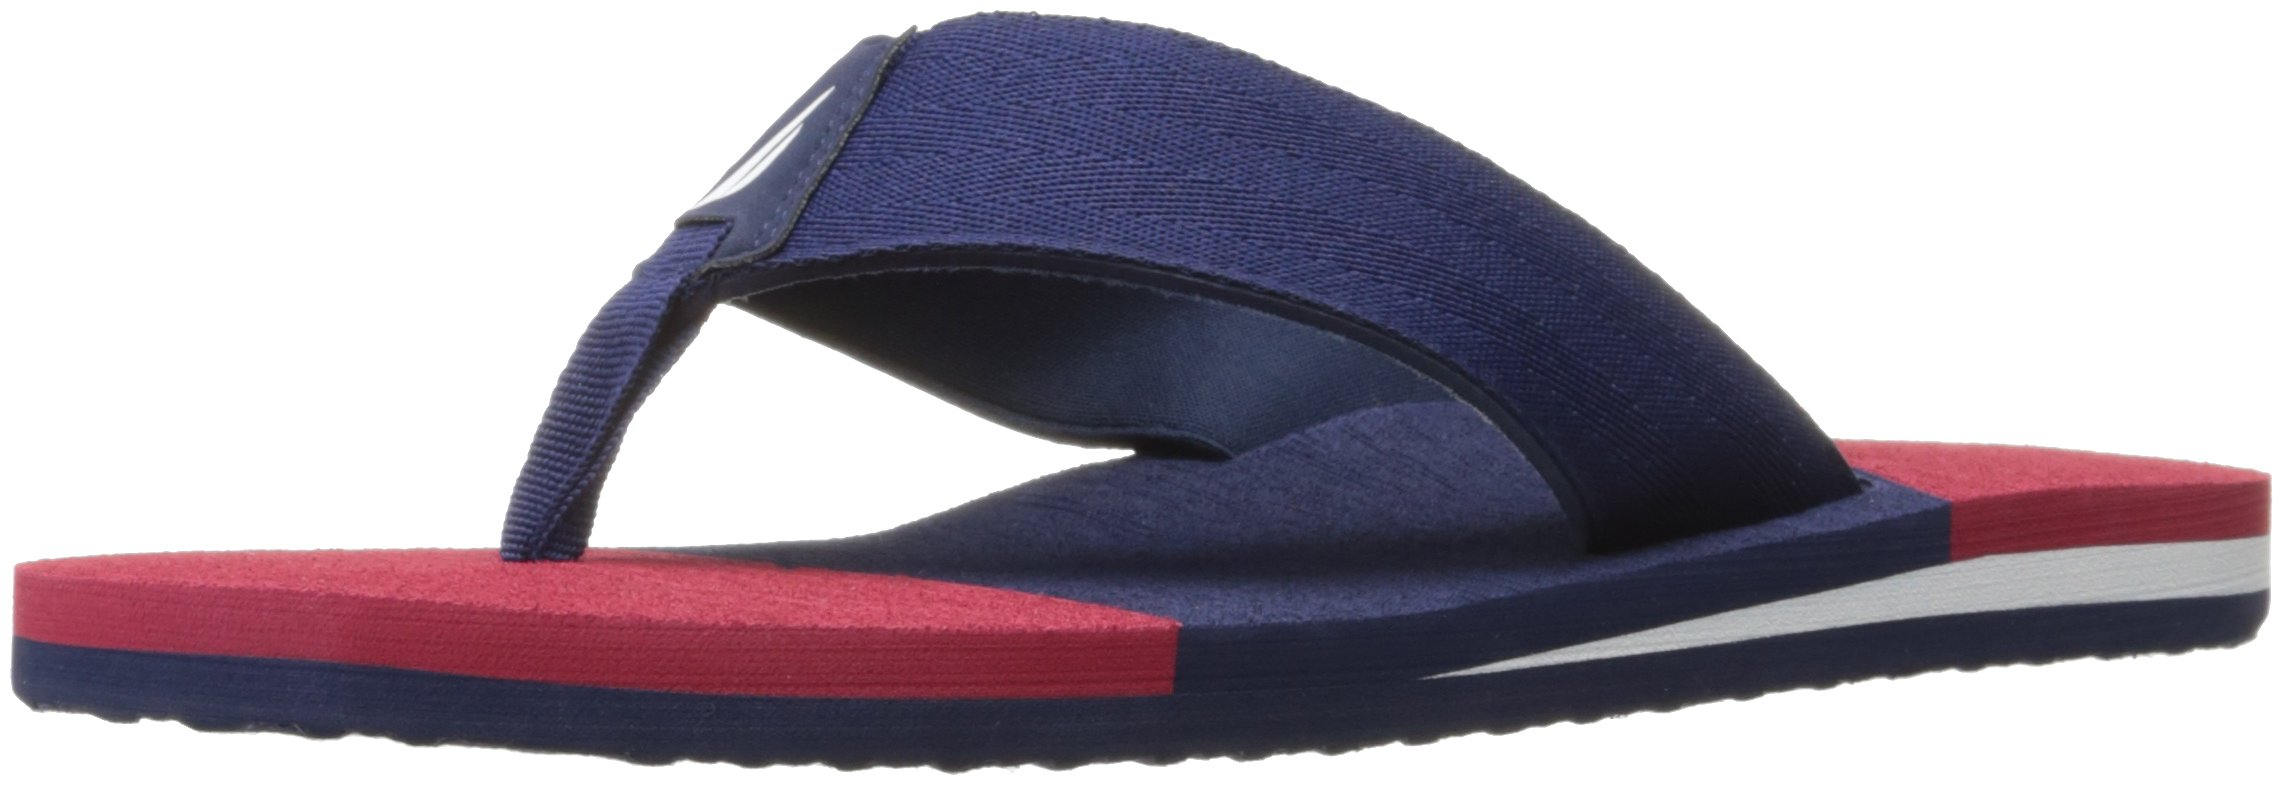 Nautica Men's Brookbury Flip Flop, Peacoat/Cherry, 11 M US